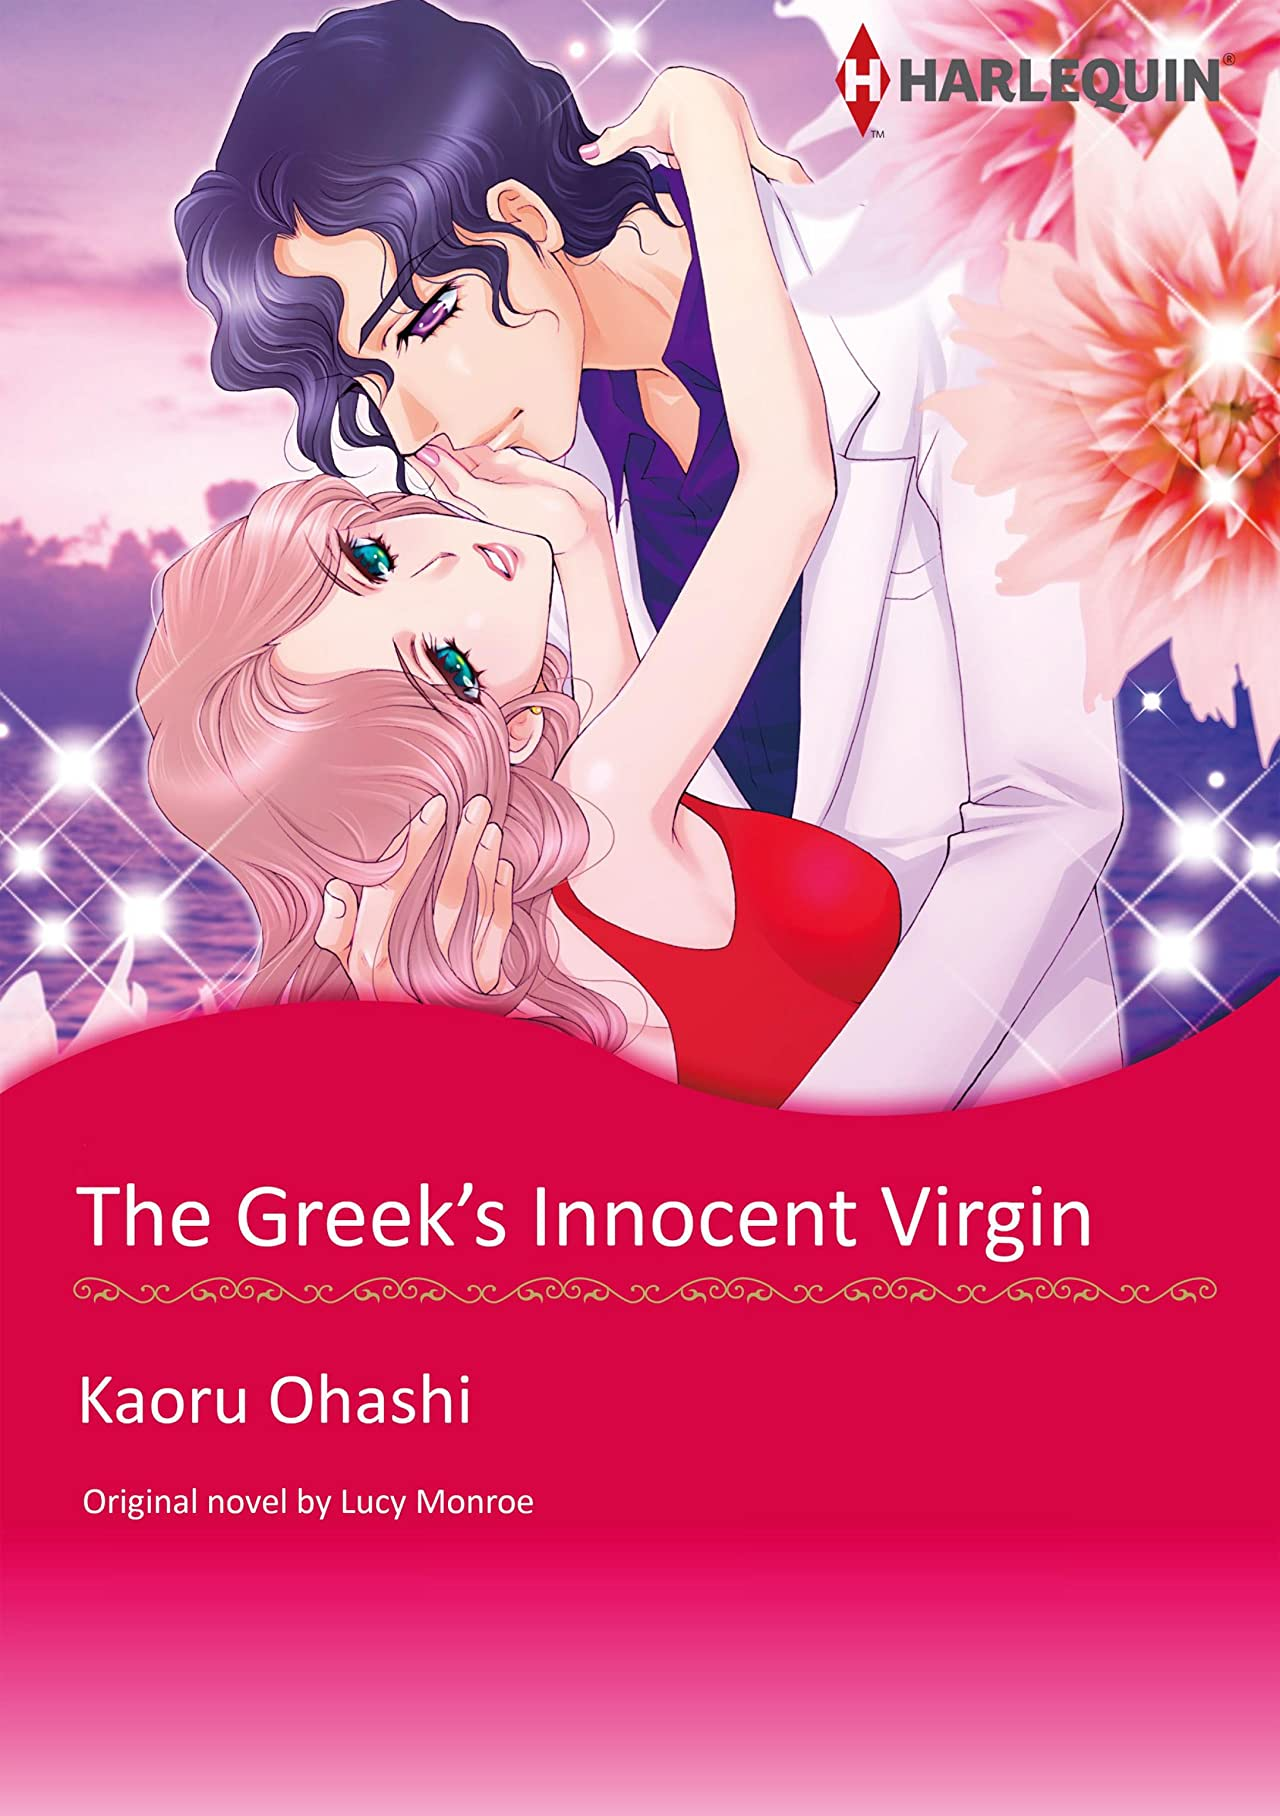 The Greek's Innocent Virgin